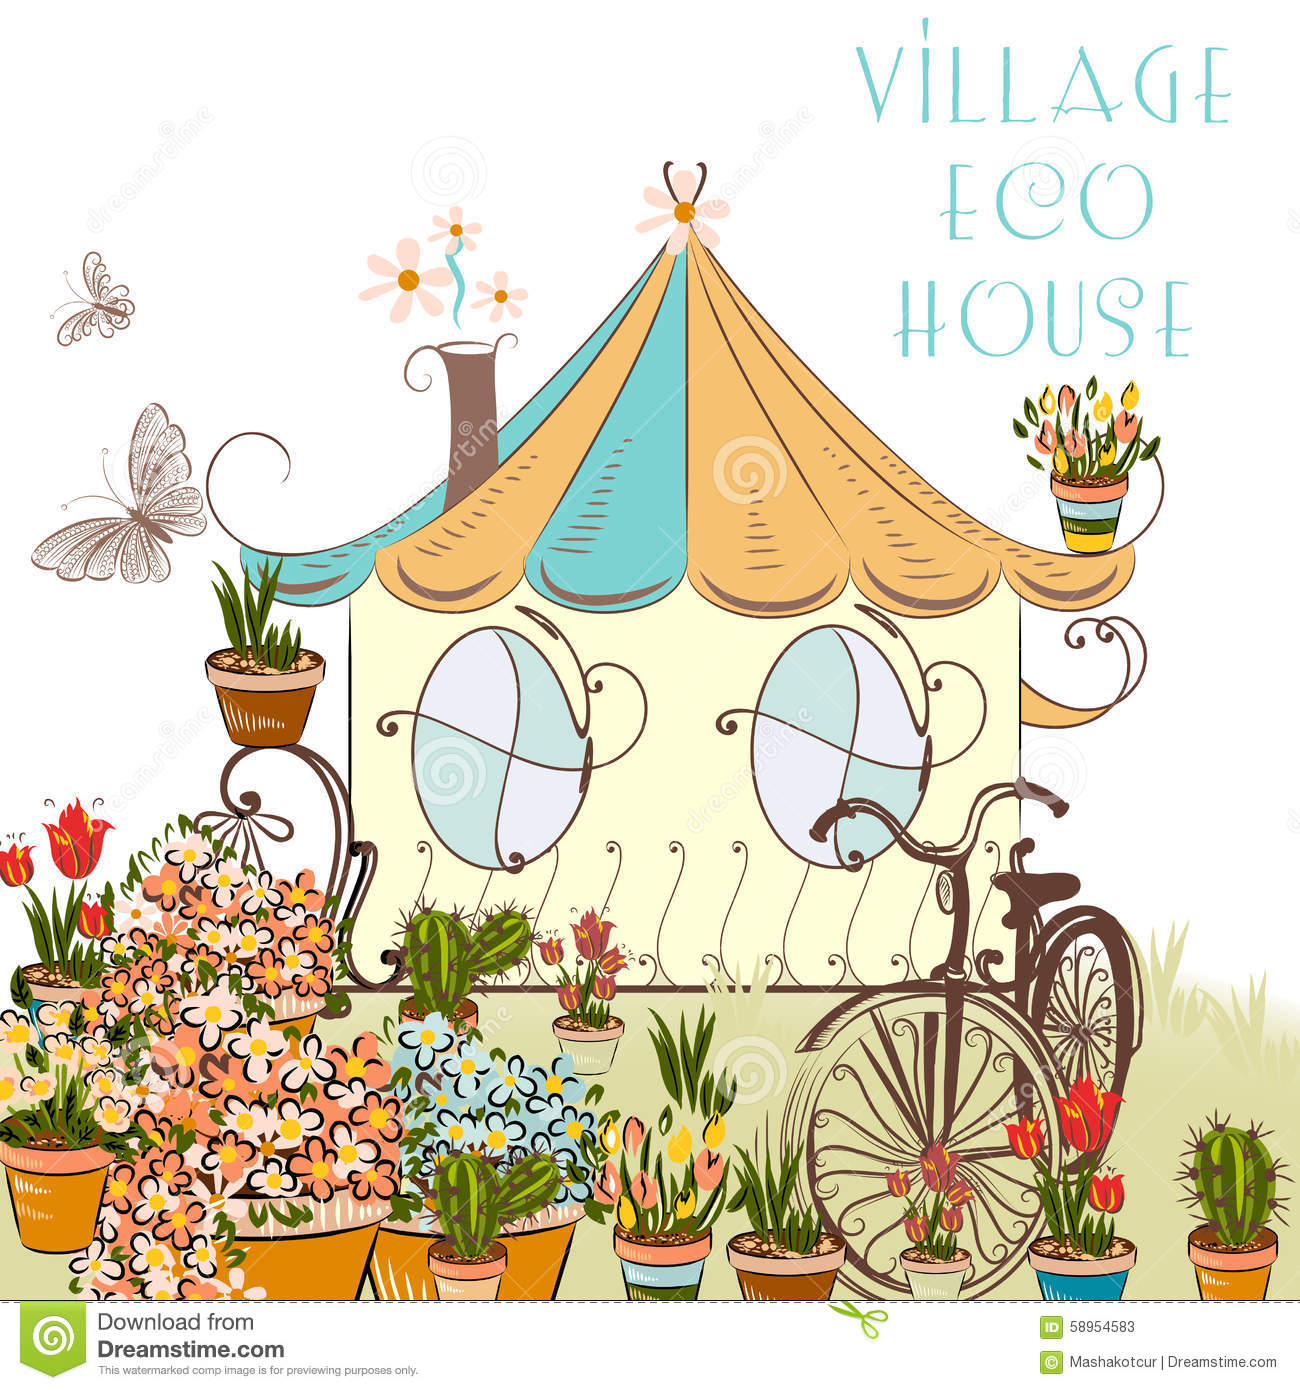 Roses In Garden: Nice Vector Illustration With Little Village House And